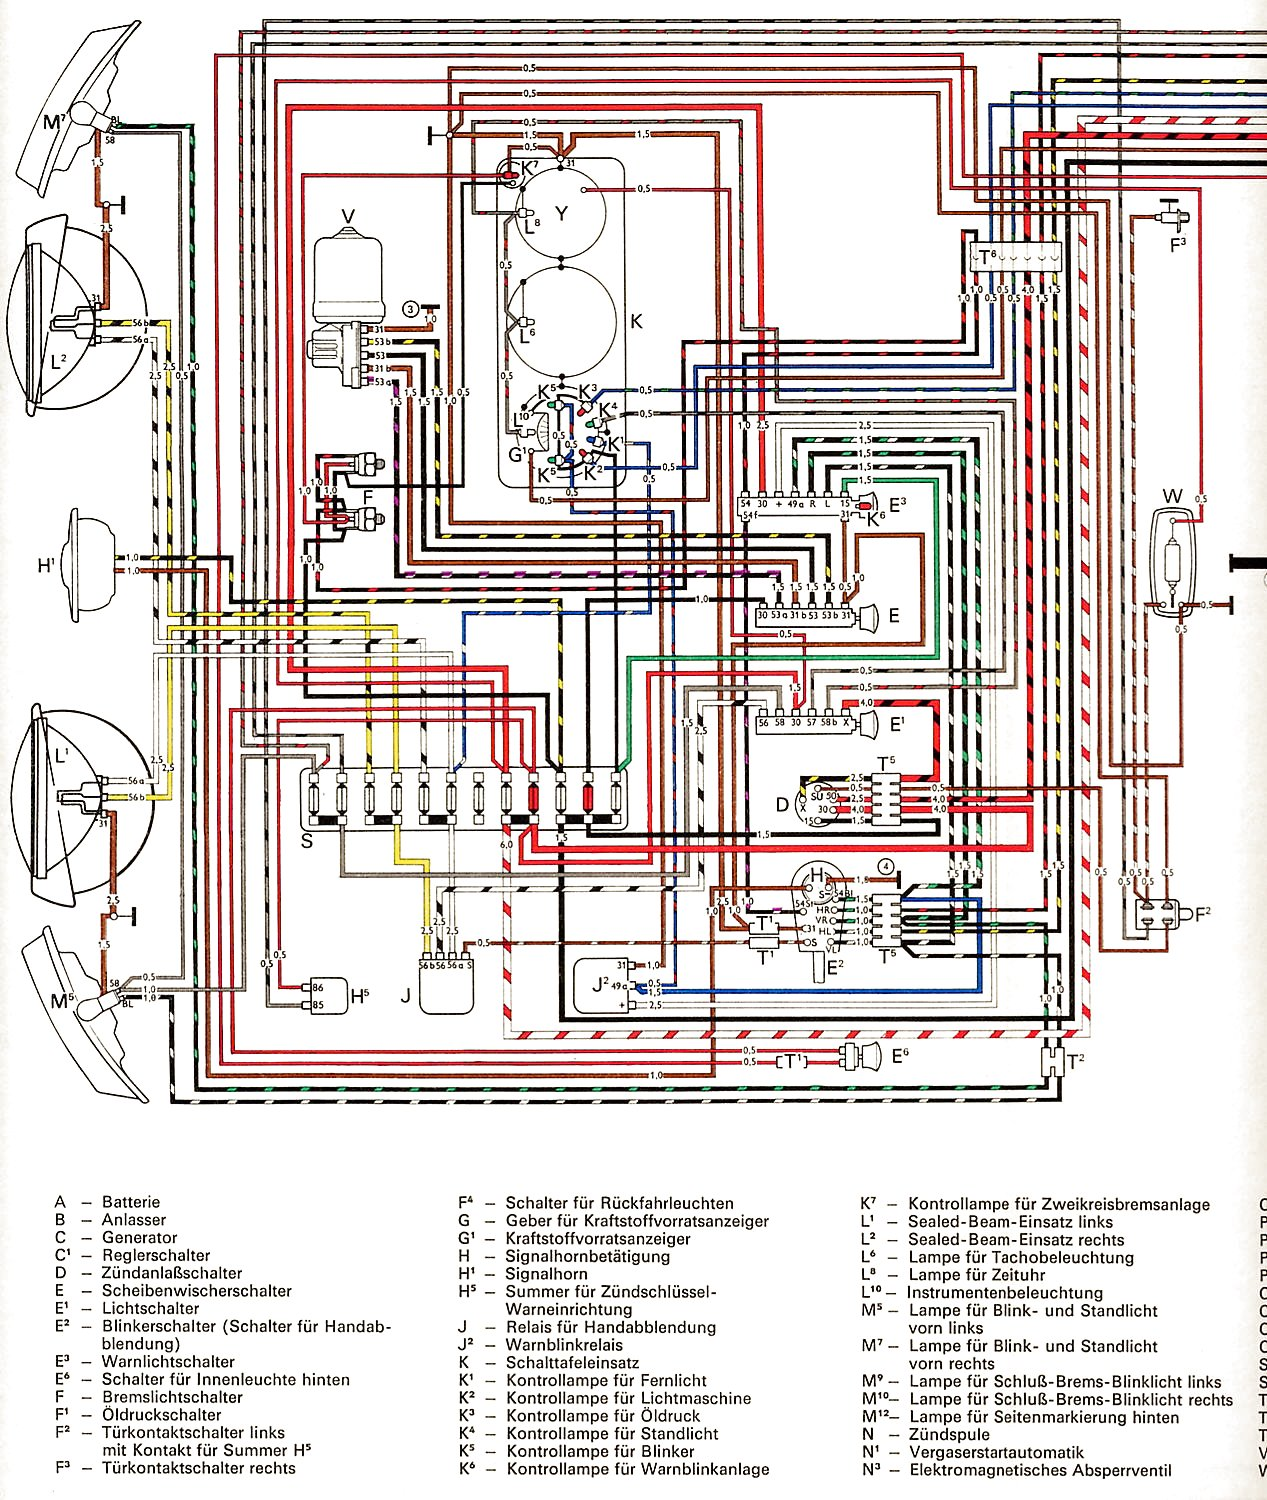 vintagebus com vw bus and other wiring diagrams rh vintagebus com 71 vw beetle wiring diagram 1971 VW Beetle